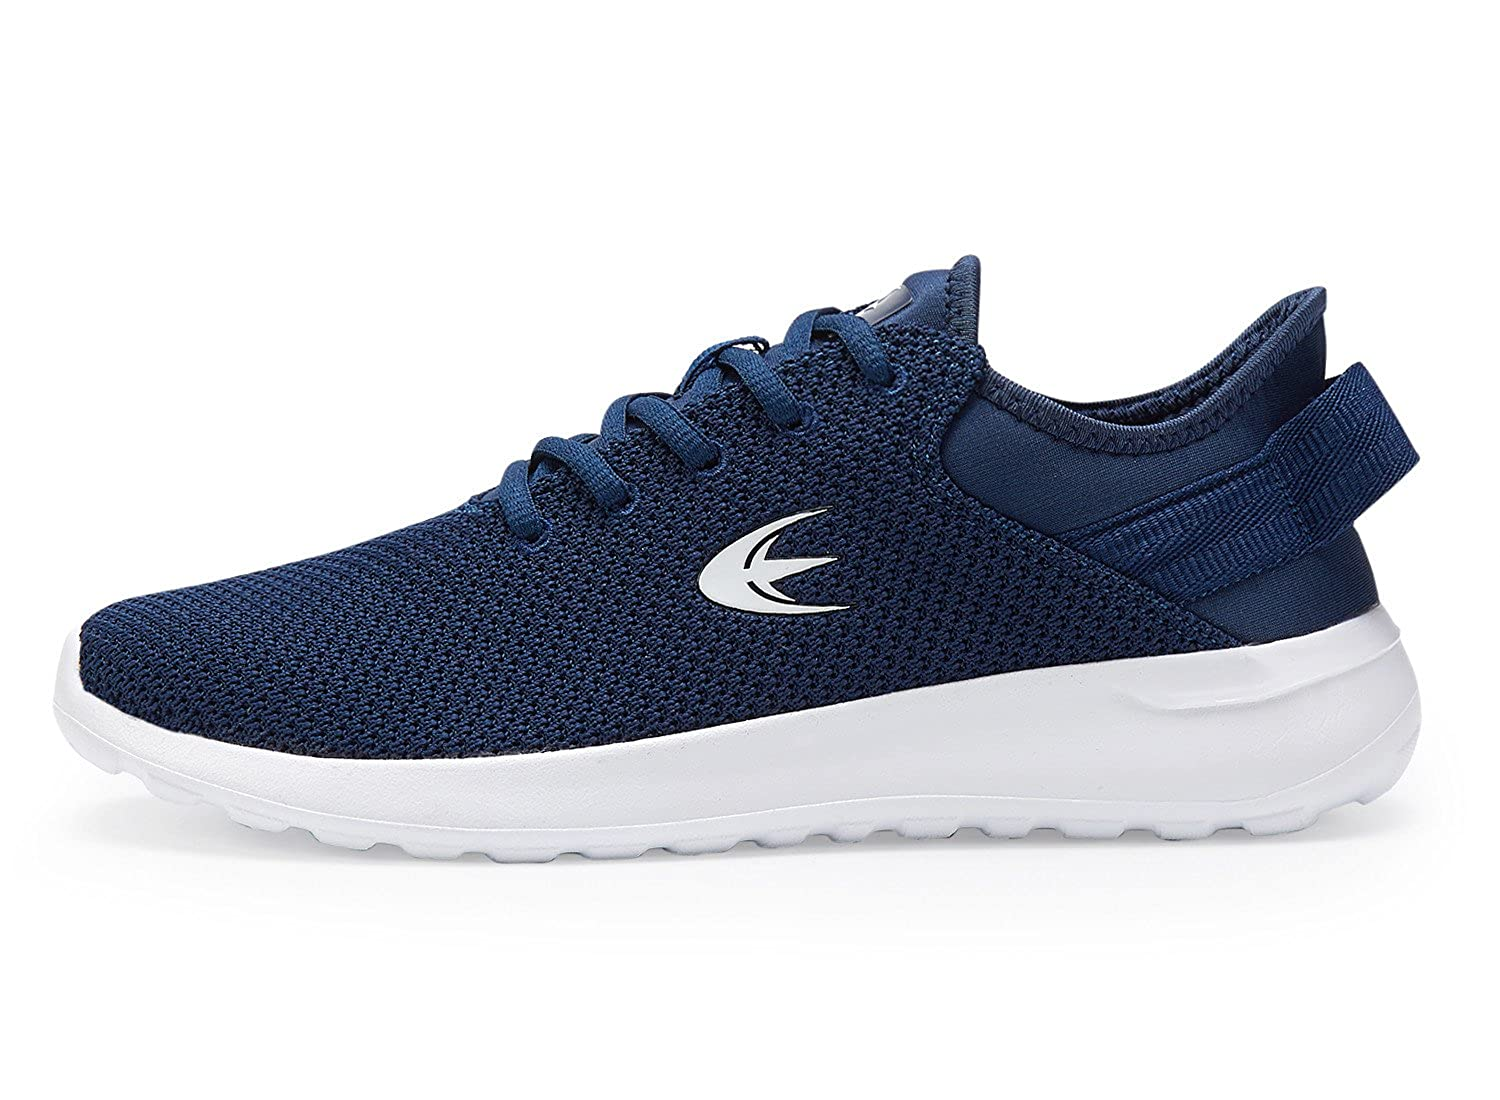 Men Athletic Shoes Breathable Sneakers Running Shoes Fashion Knit Casual Shoes